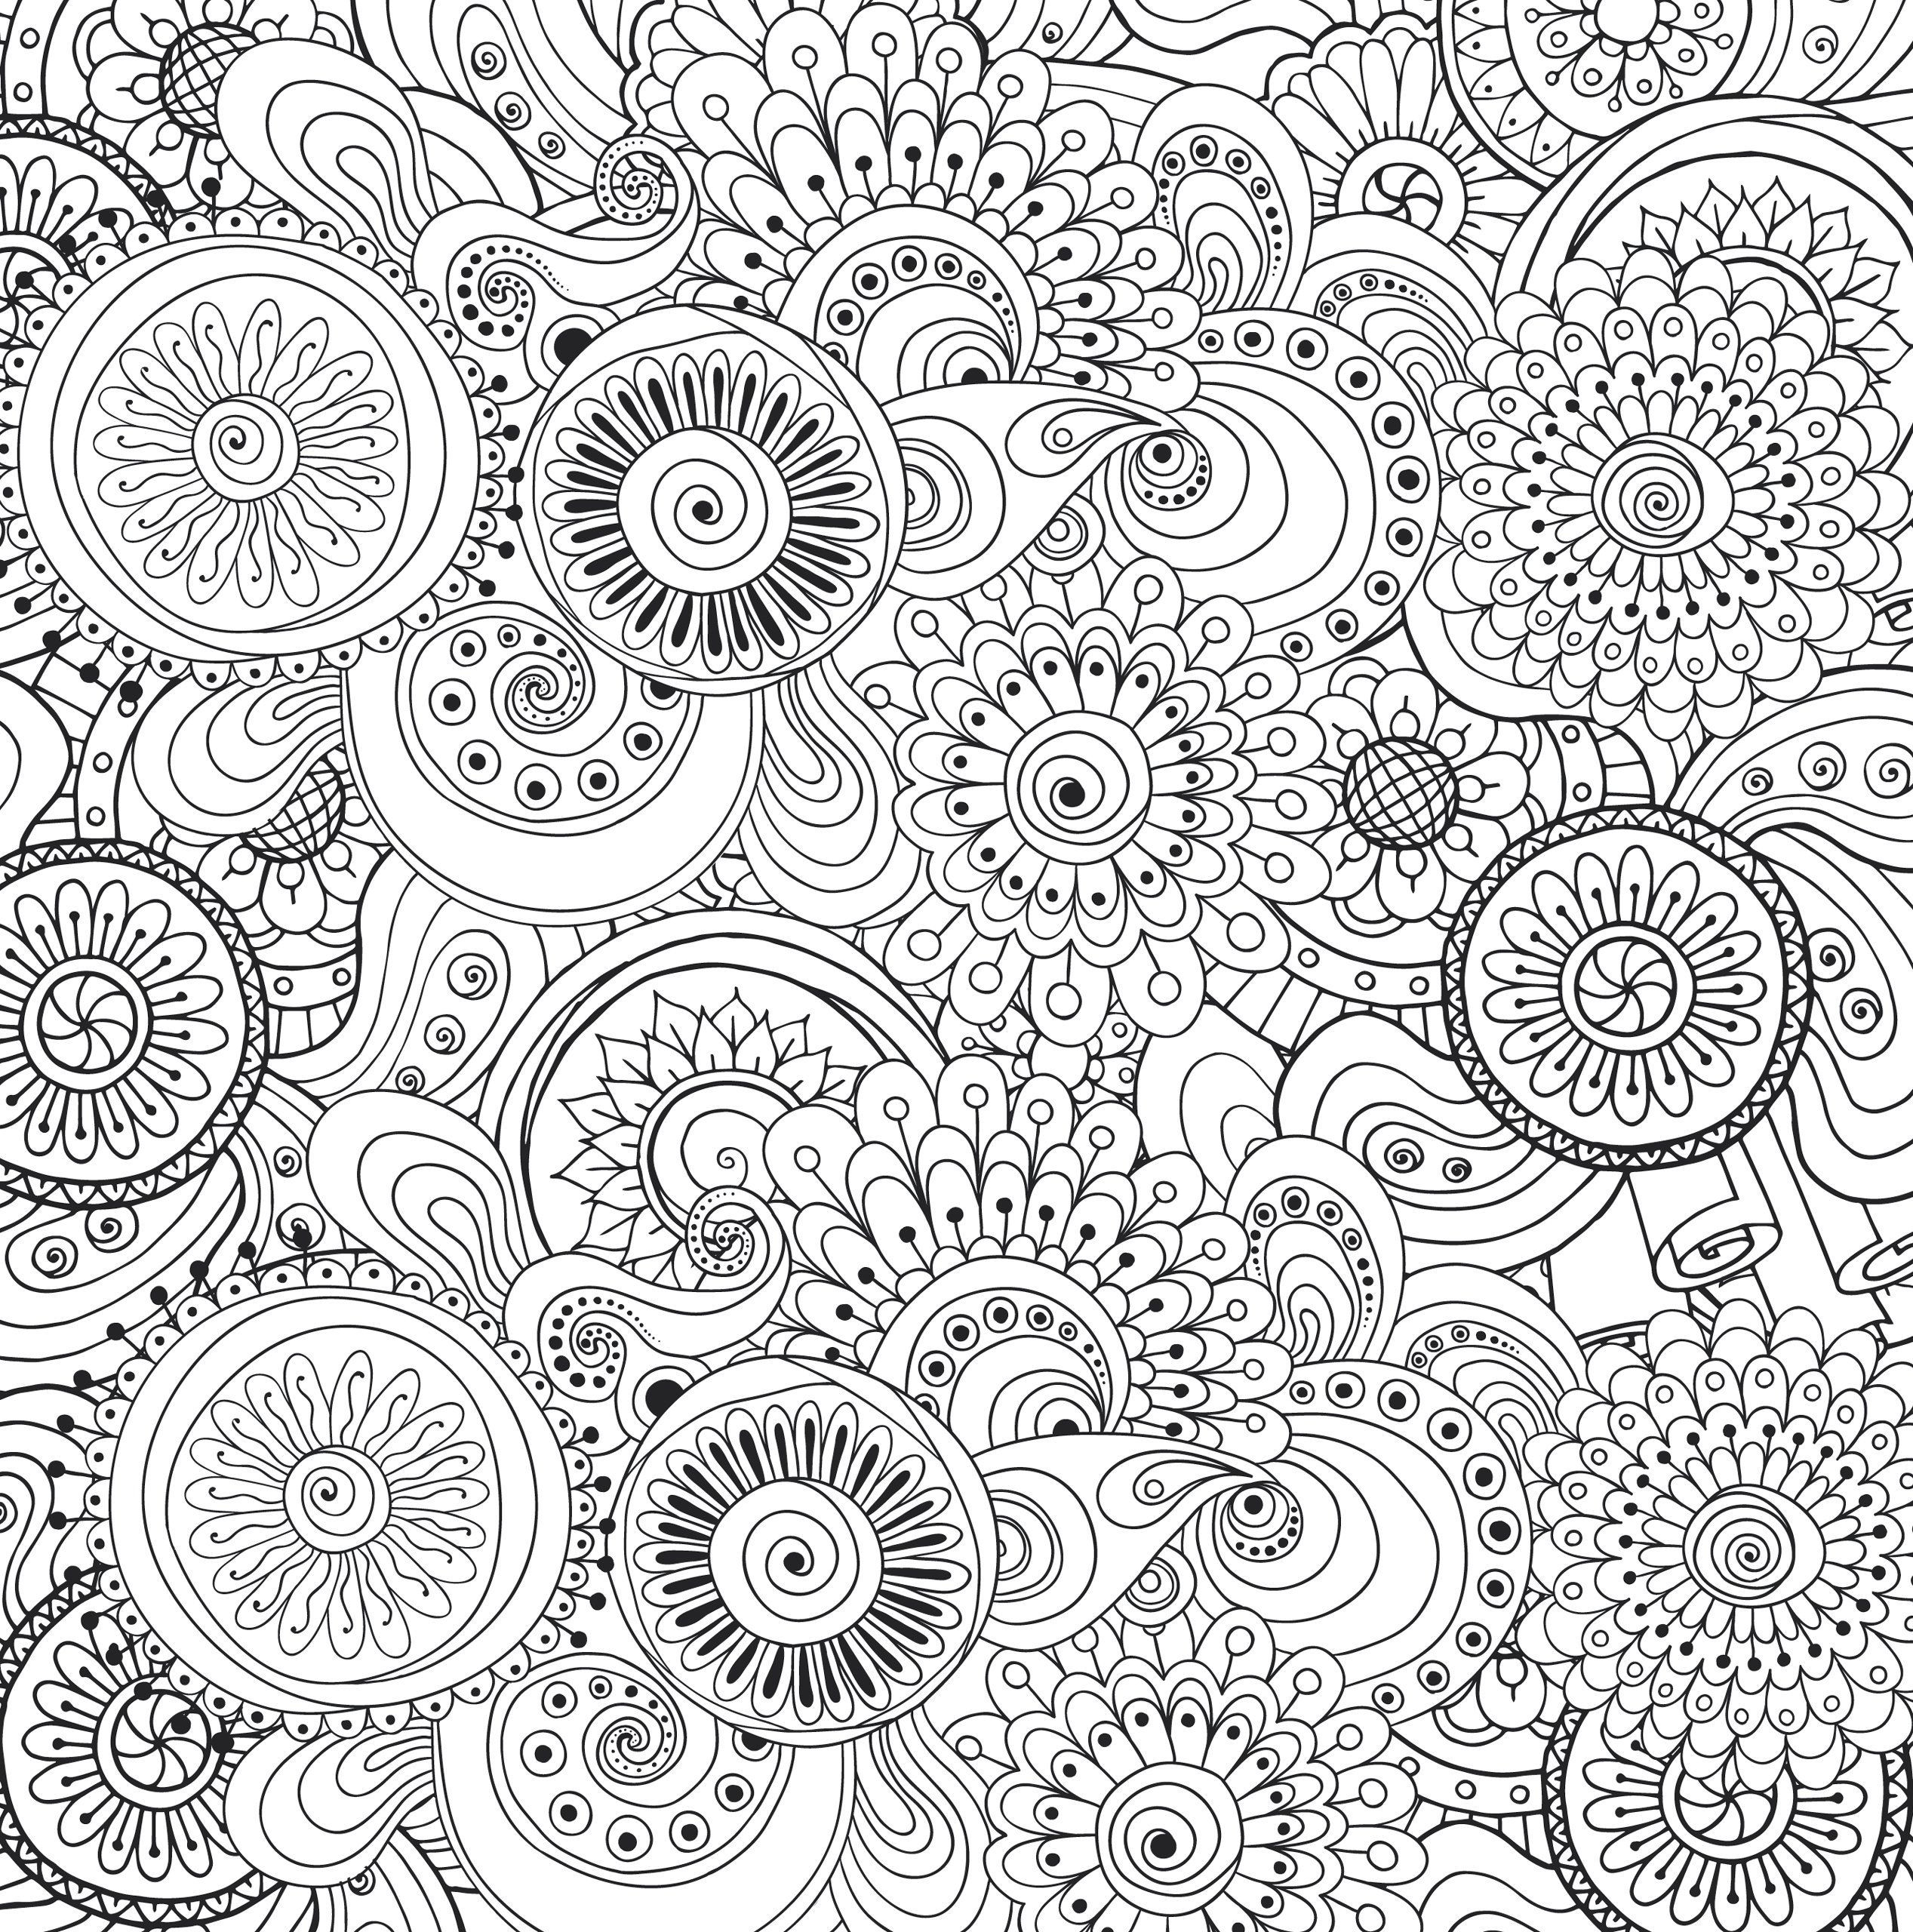 Adult Stress Coloring Books  Peaceful Paisleys Adult Coloring Book 31 stress relieving